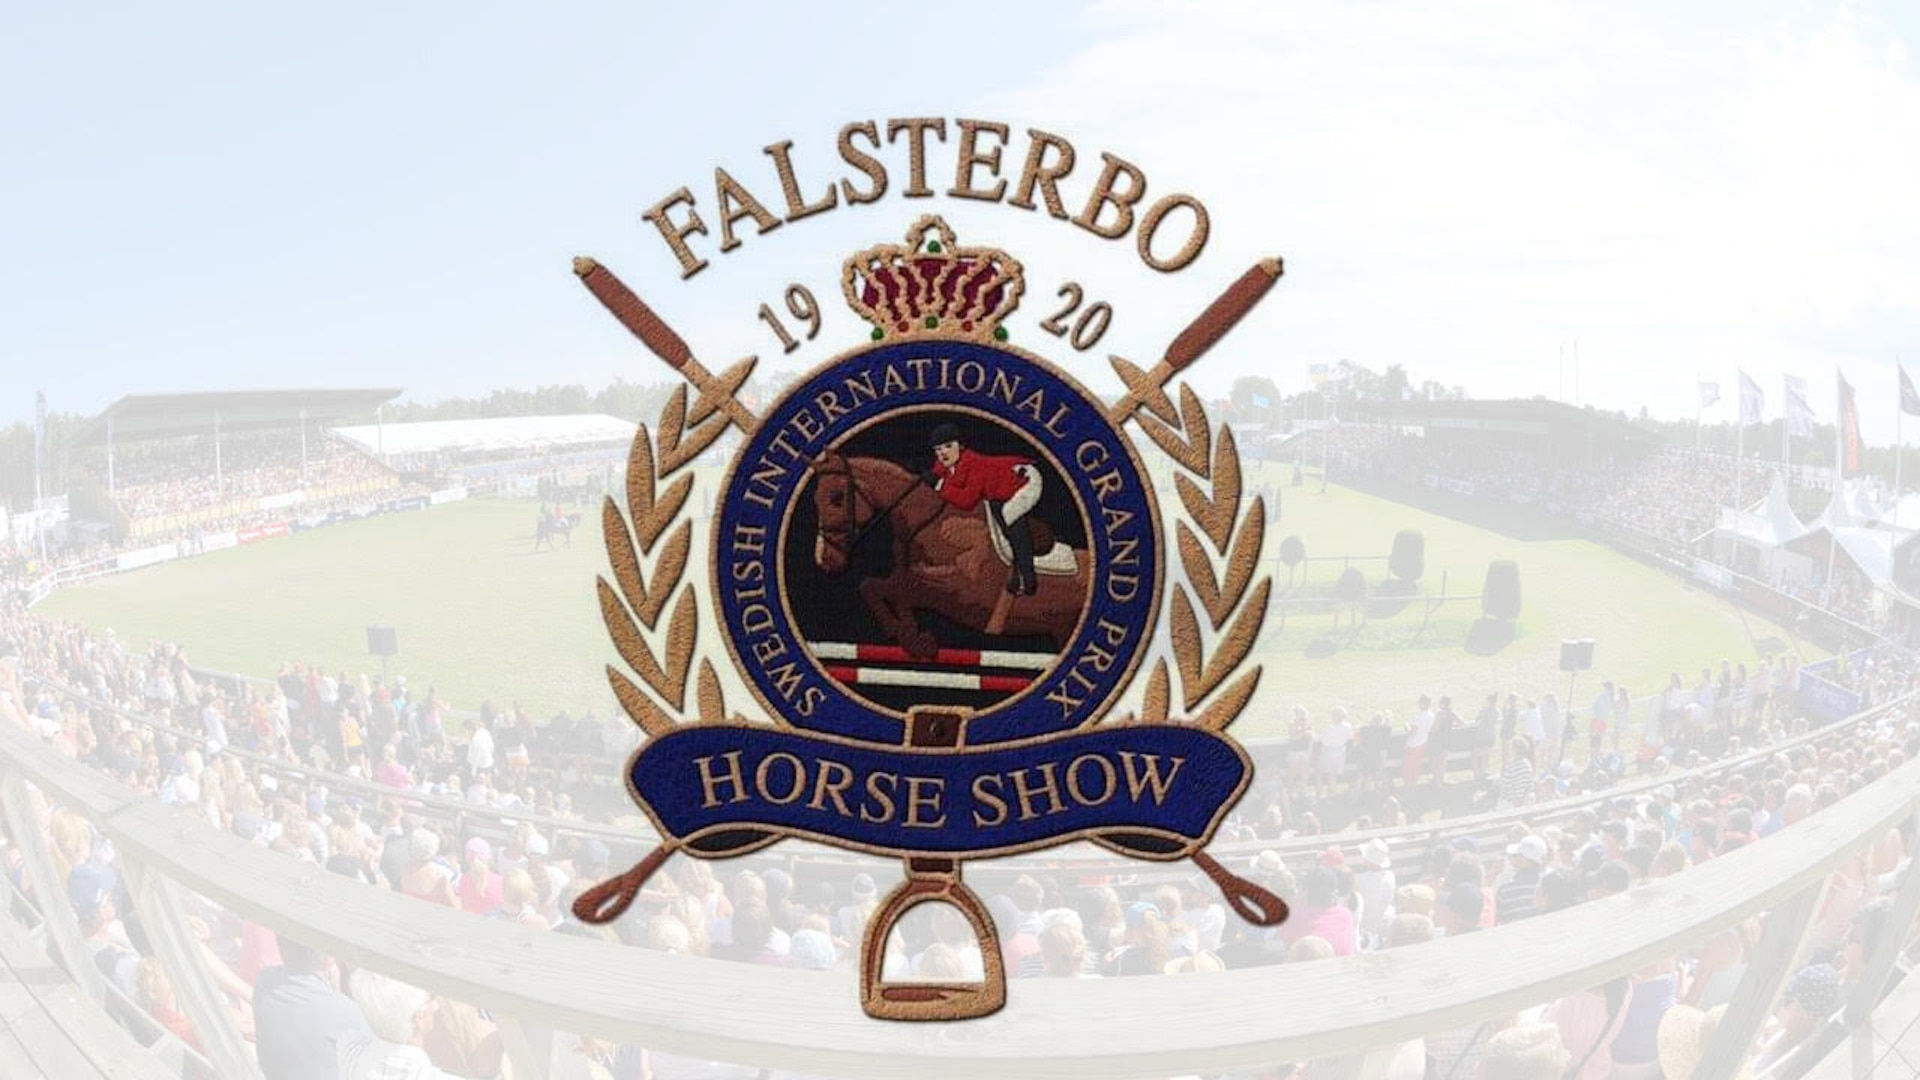 Falsterbo Horse Show 2021